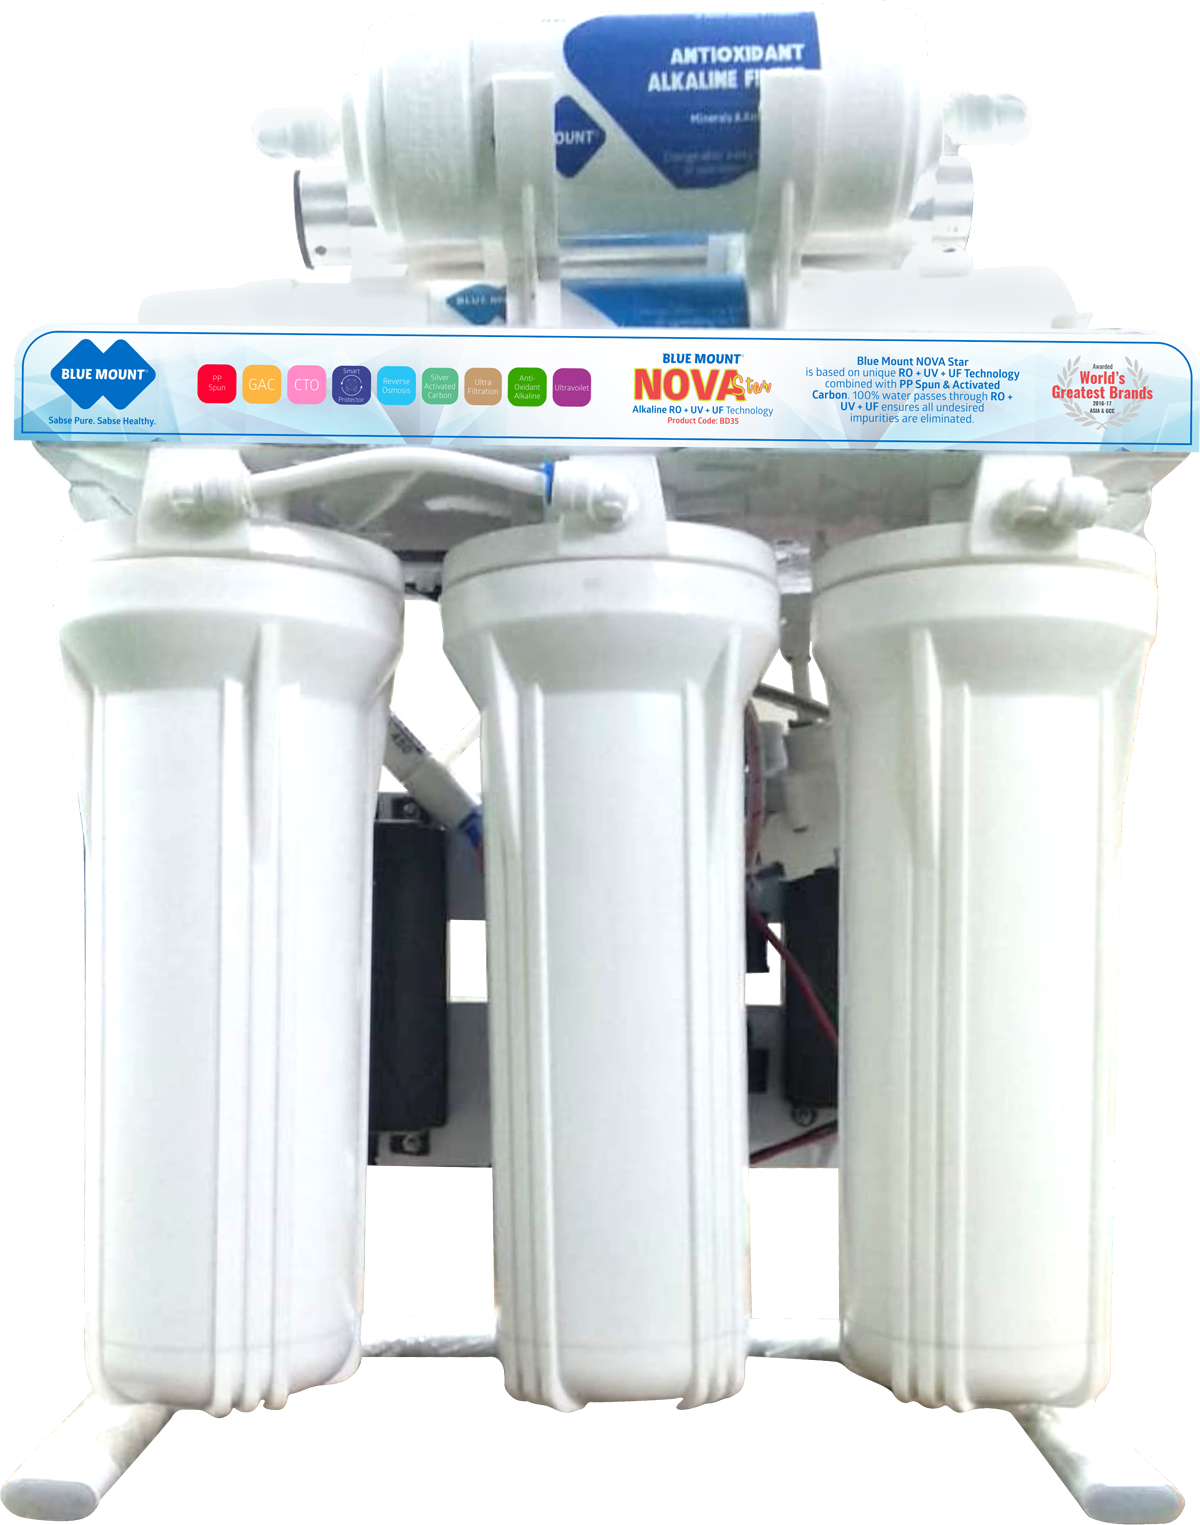 Blue mount Nova Star Alkaine RO + UV + UF Water Purifier